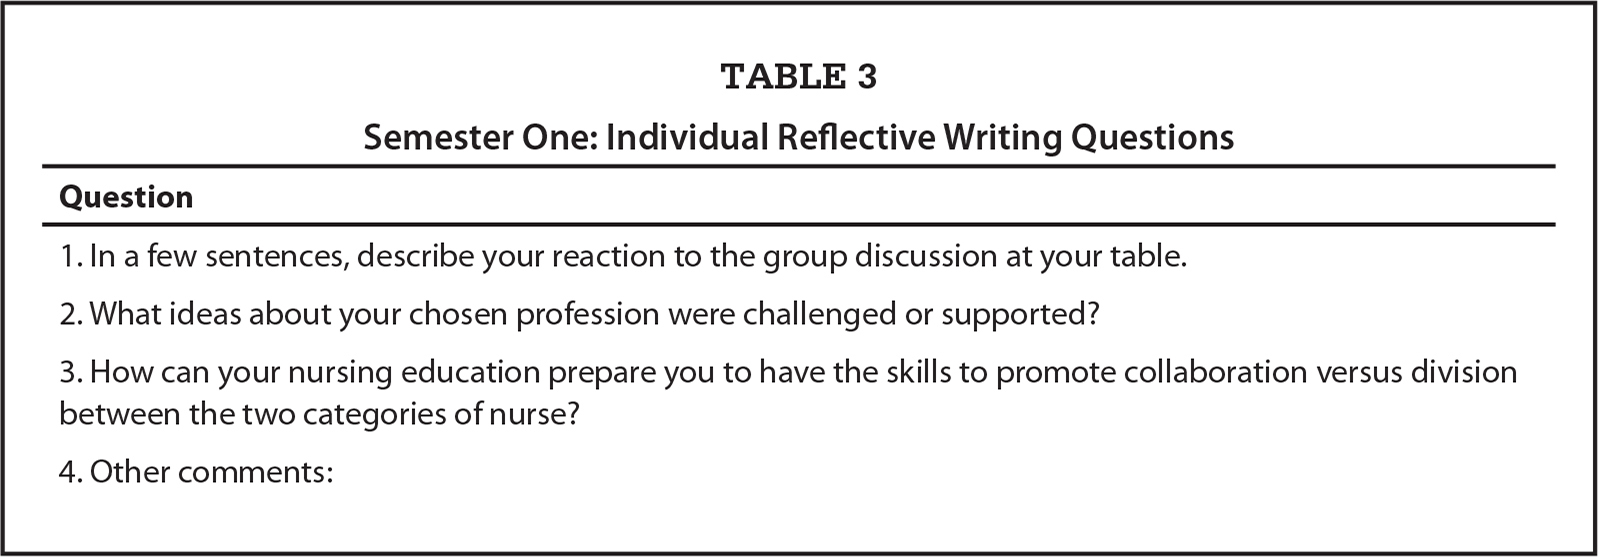 Semester One: Individual Reflective Writing Questions